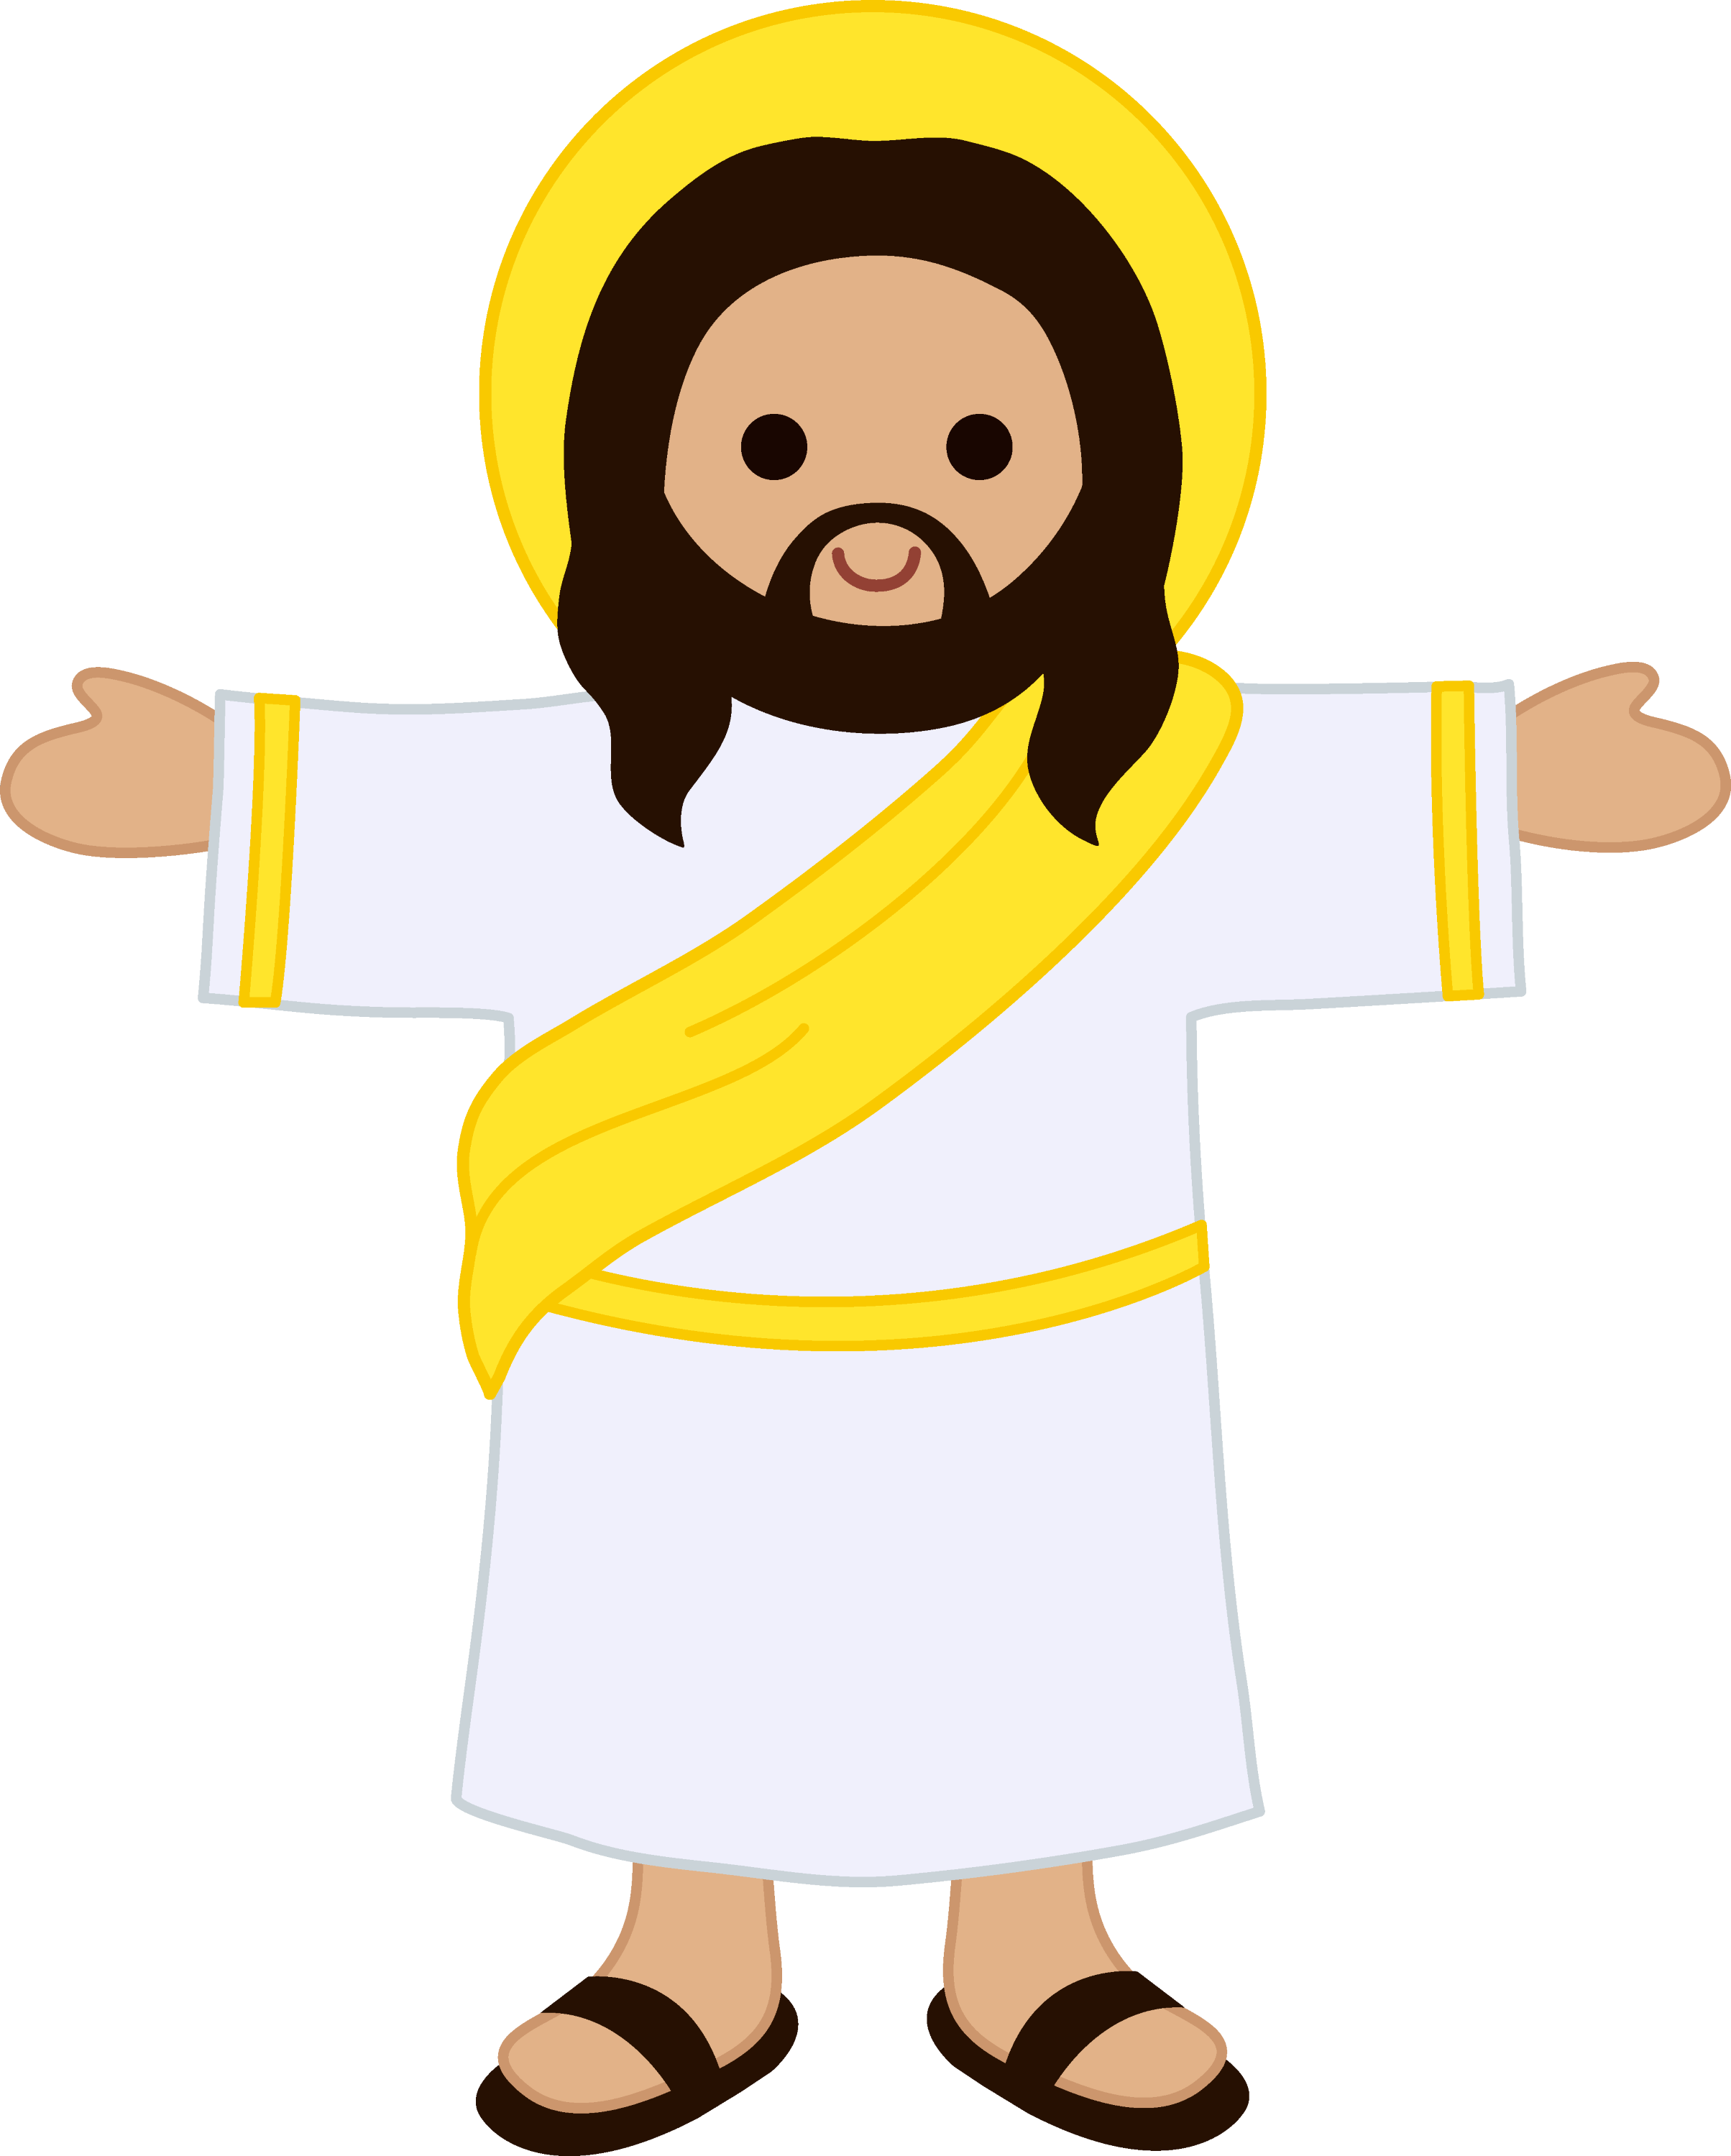 clipart cartoon jesus - photo #3